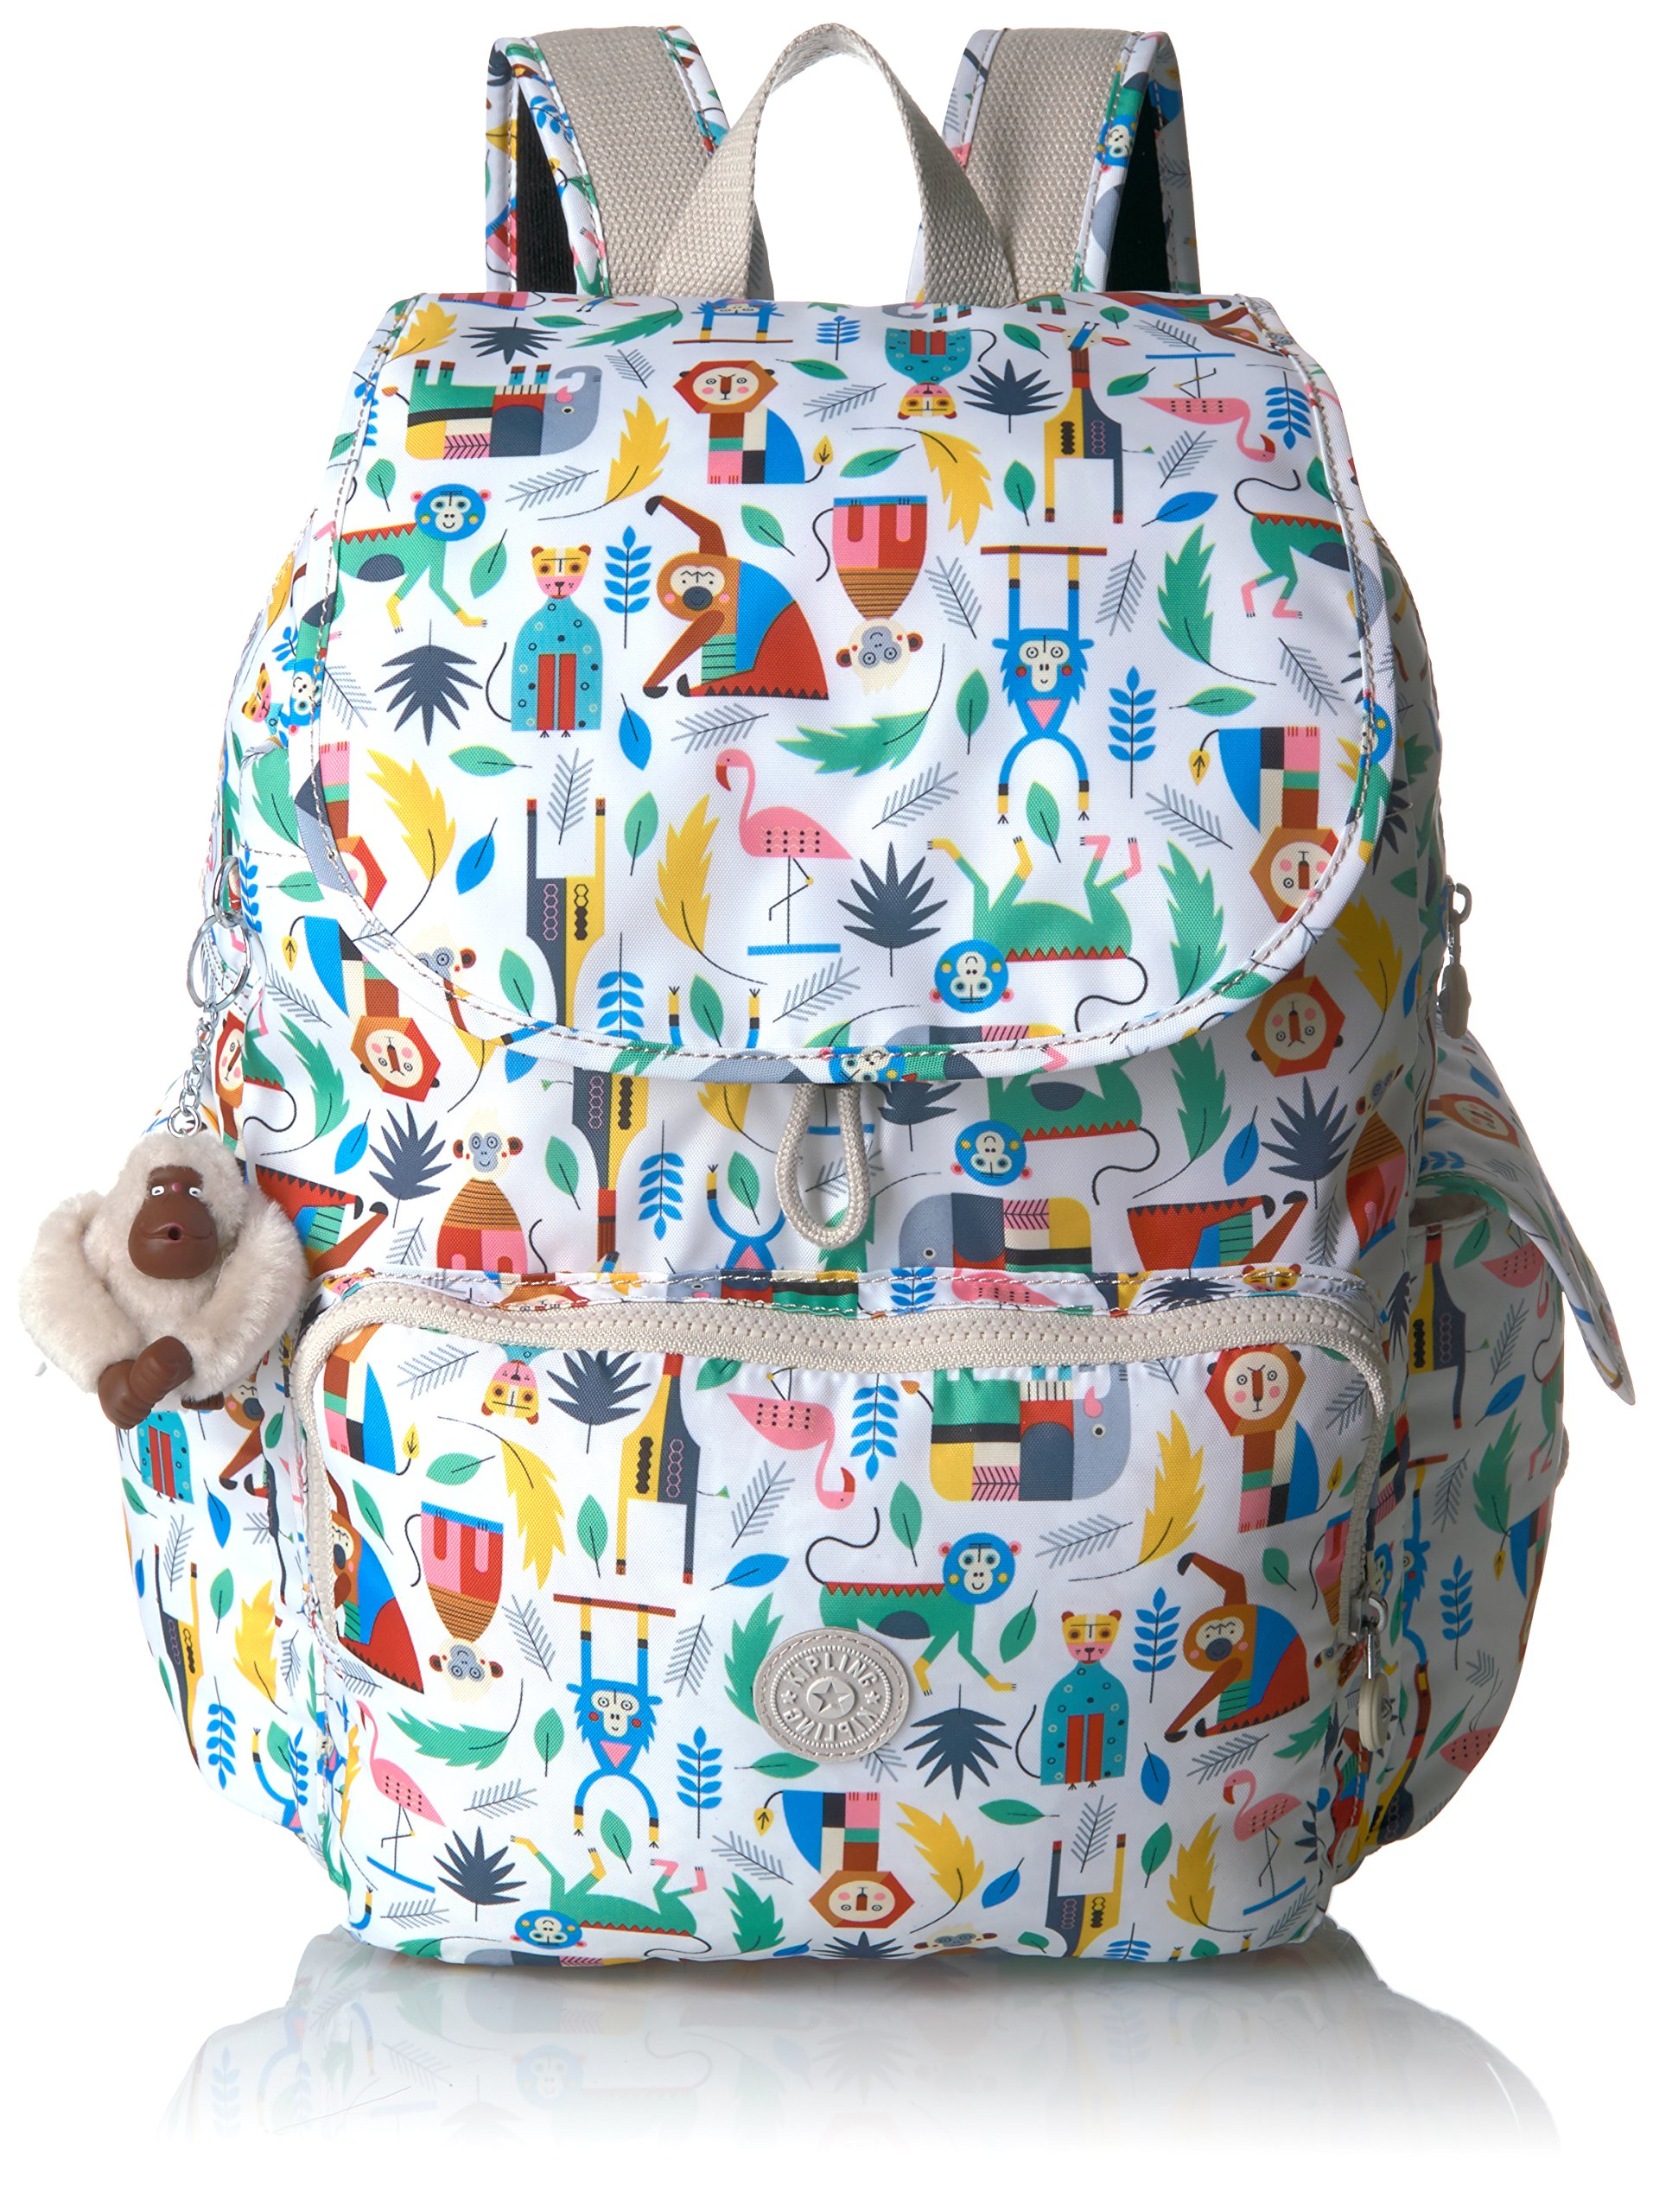 Kipling Women's Zax Printed Diaper Backpack by Kipling